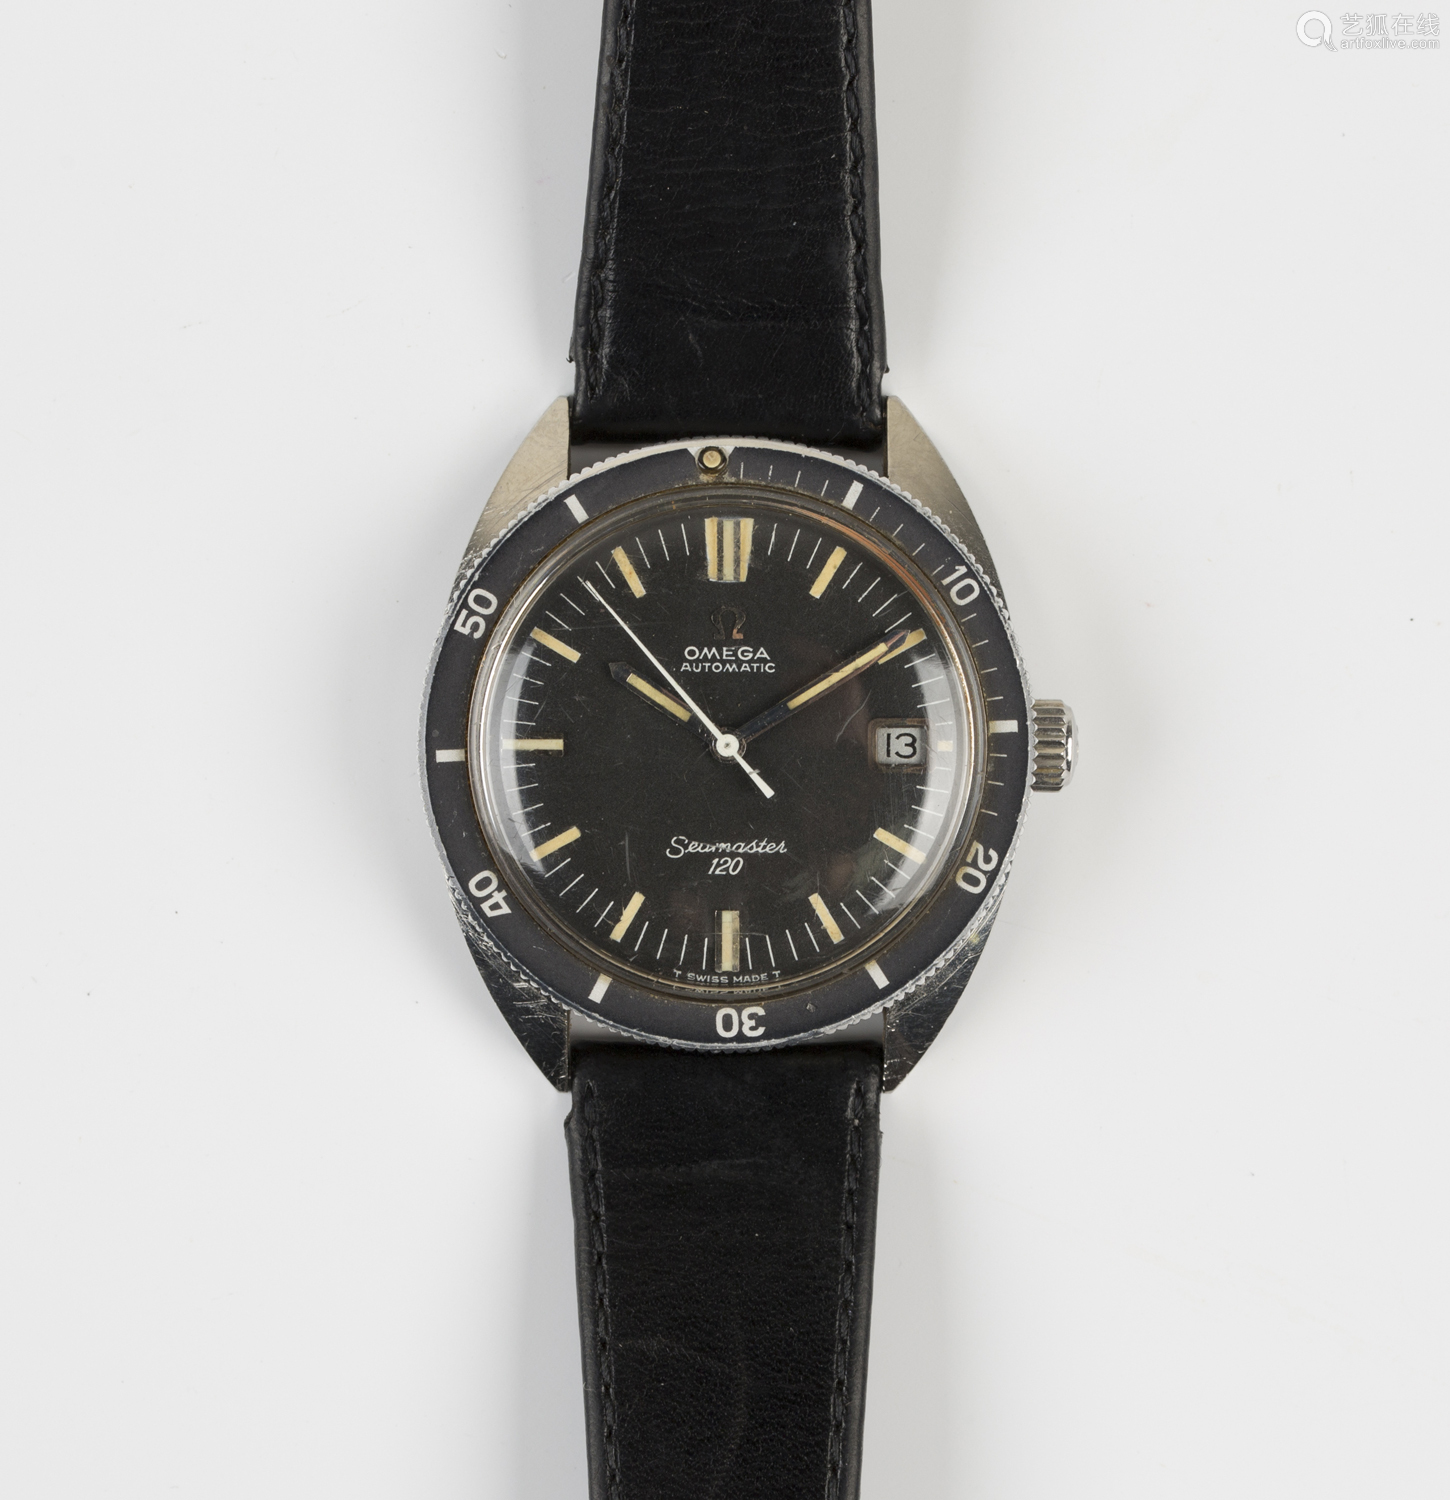 An Omega Seamaster 120 Automatic steel cased gentleman's wristwatch, the signed black dial with